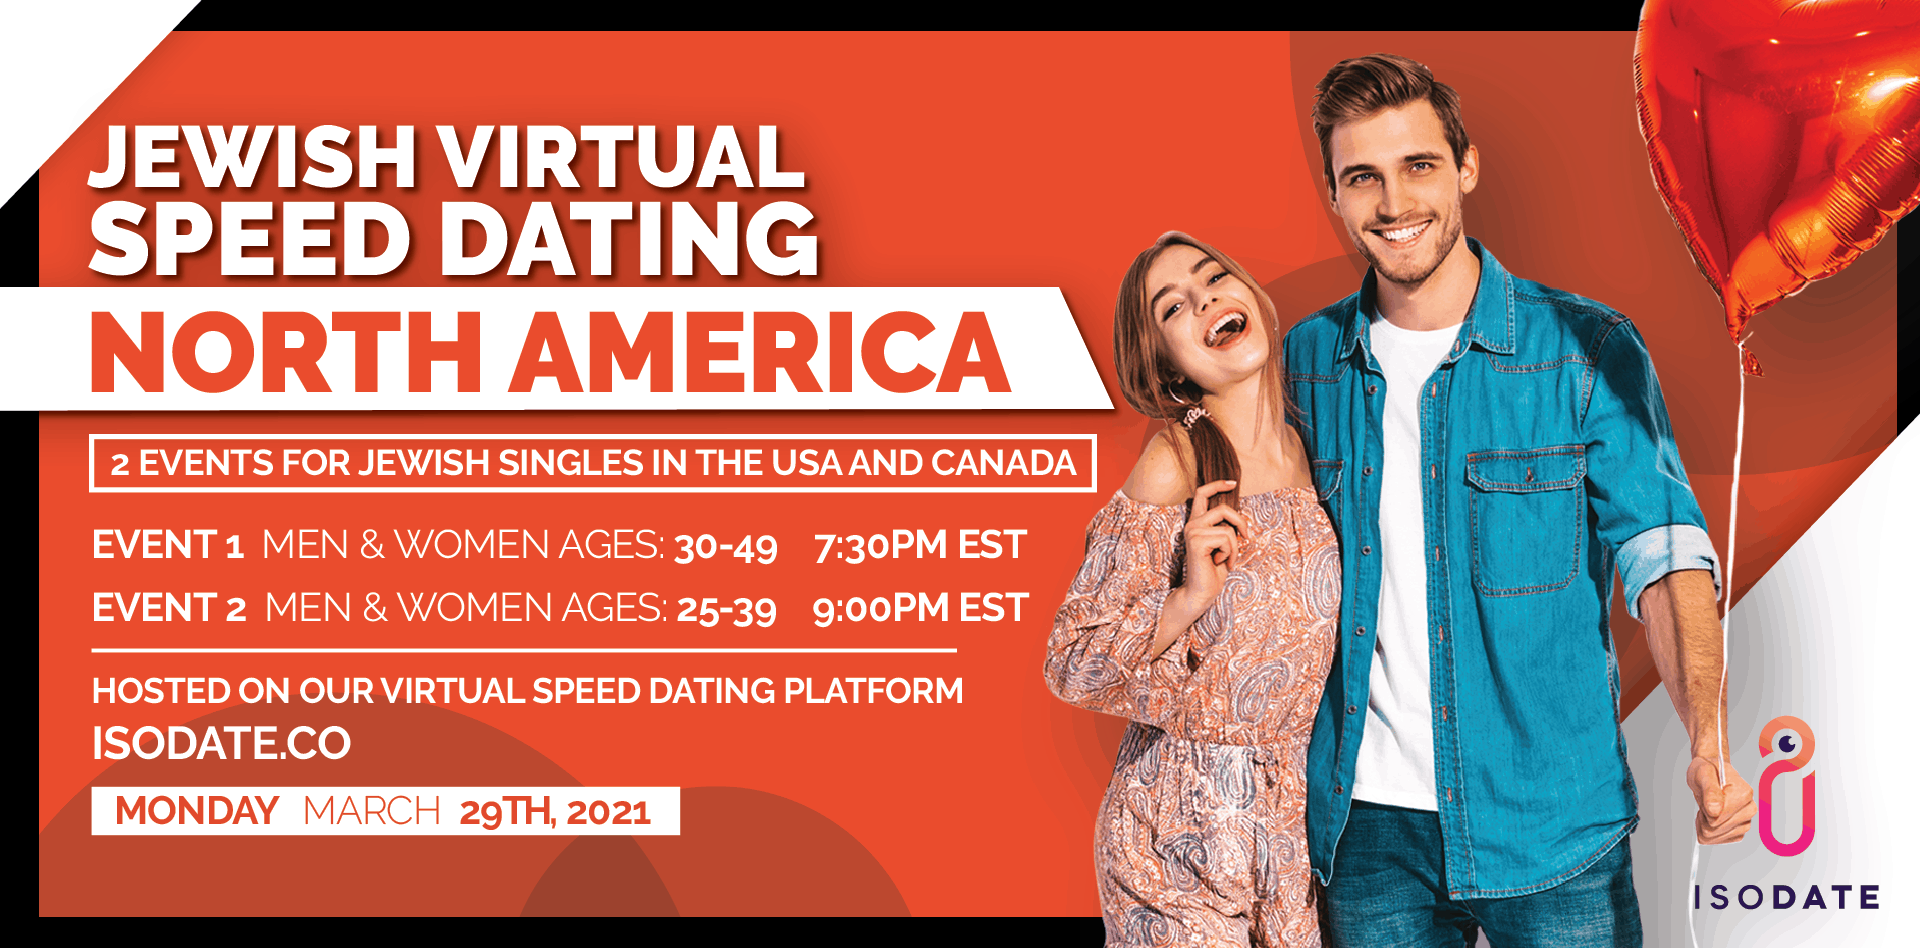 Isodate's North America Jewish Virtual Speed Dating